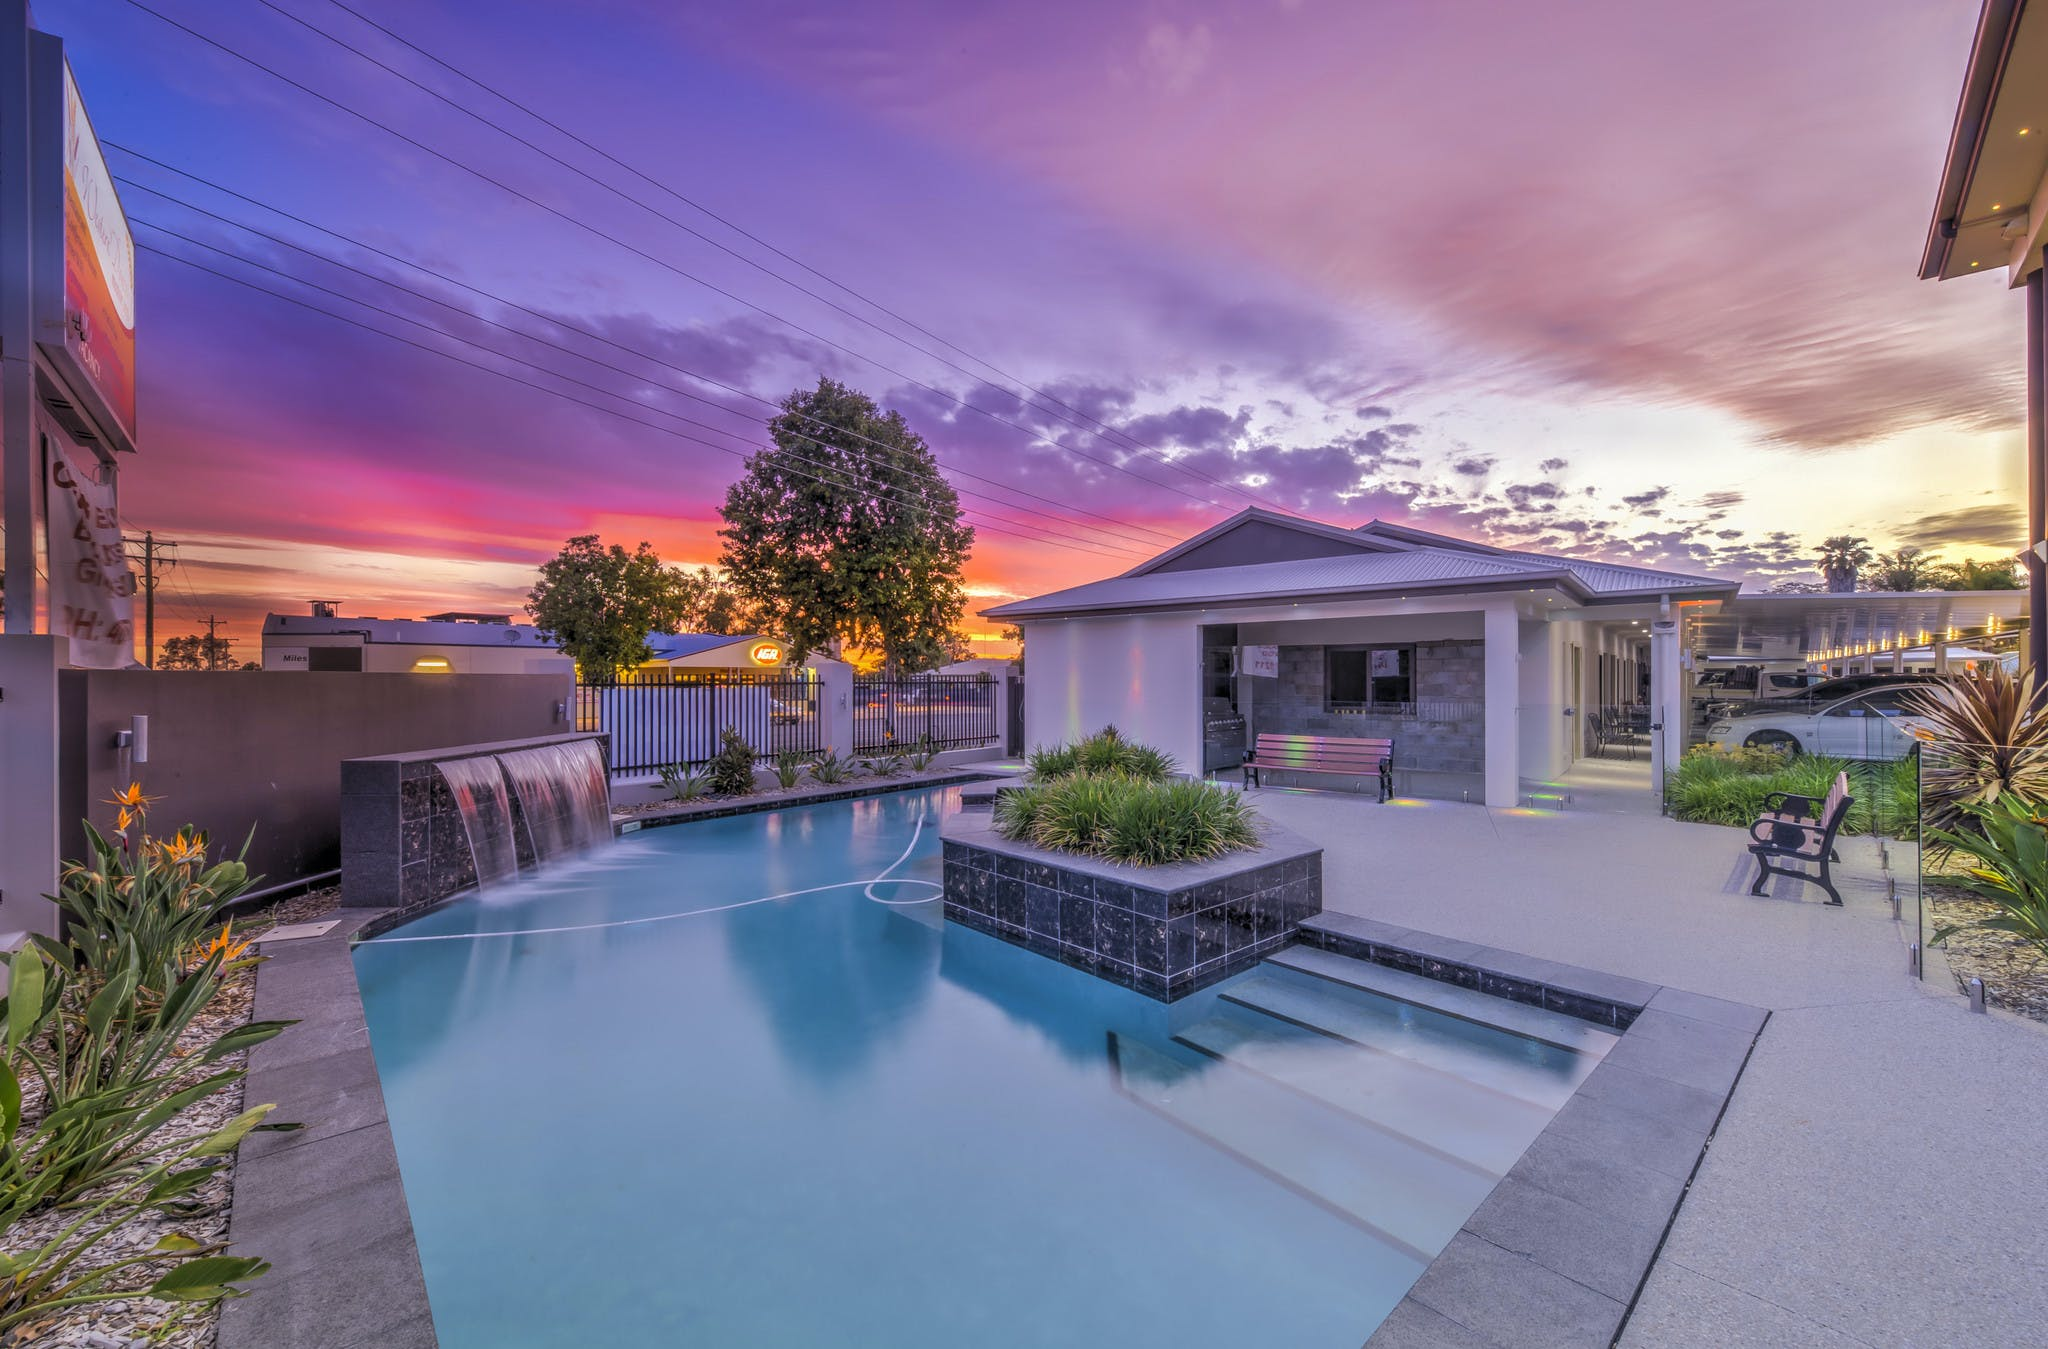 Real Estate Photography Packages - Chris Sweetapple Photography